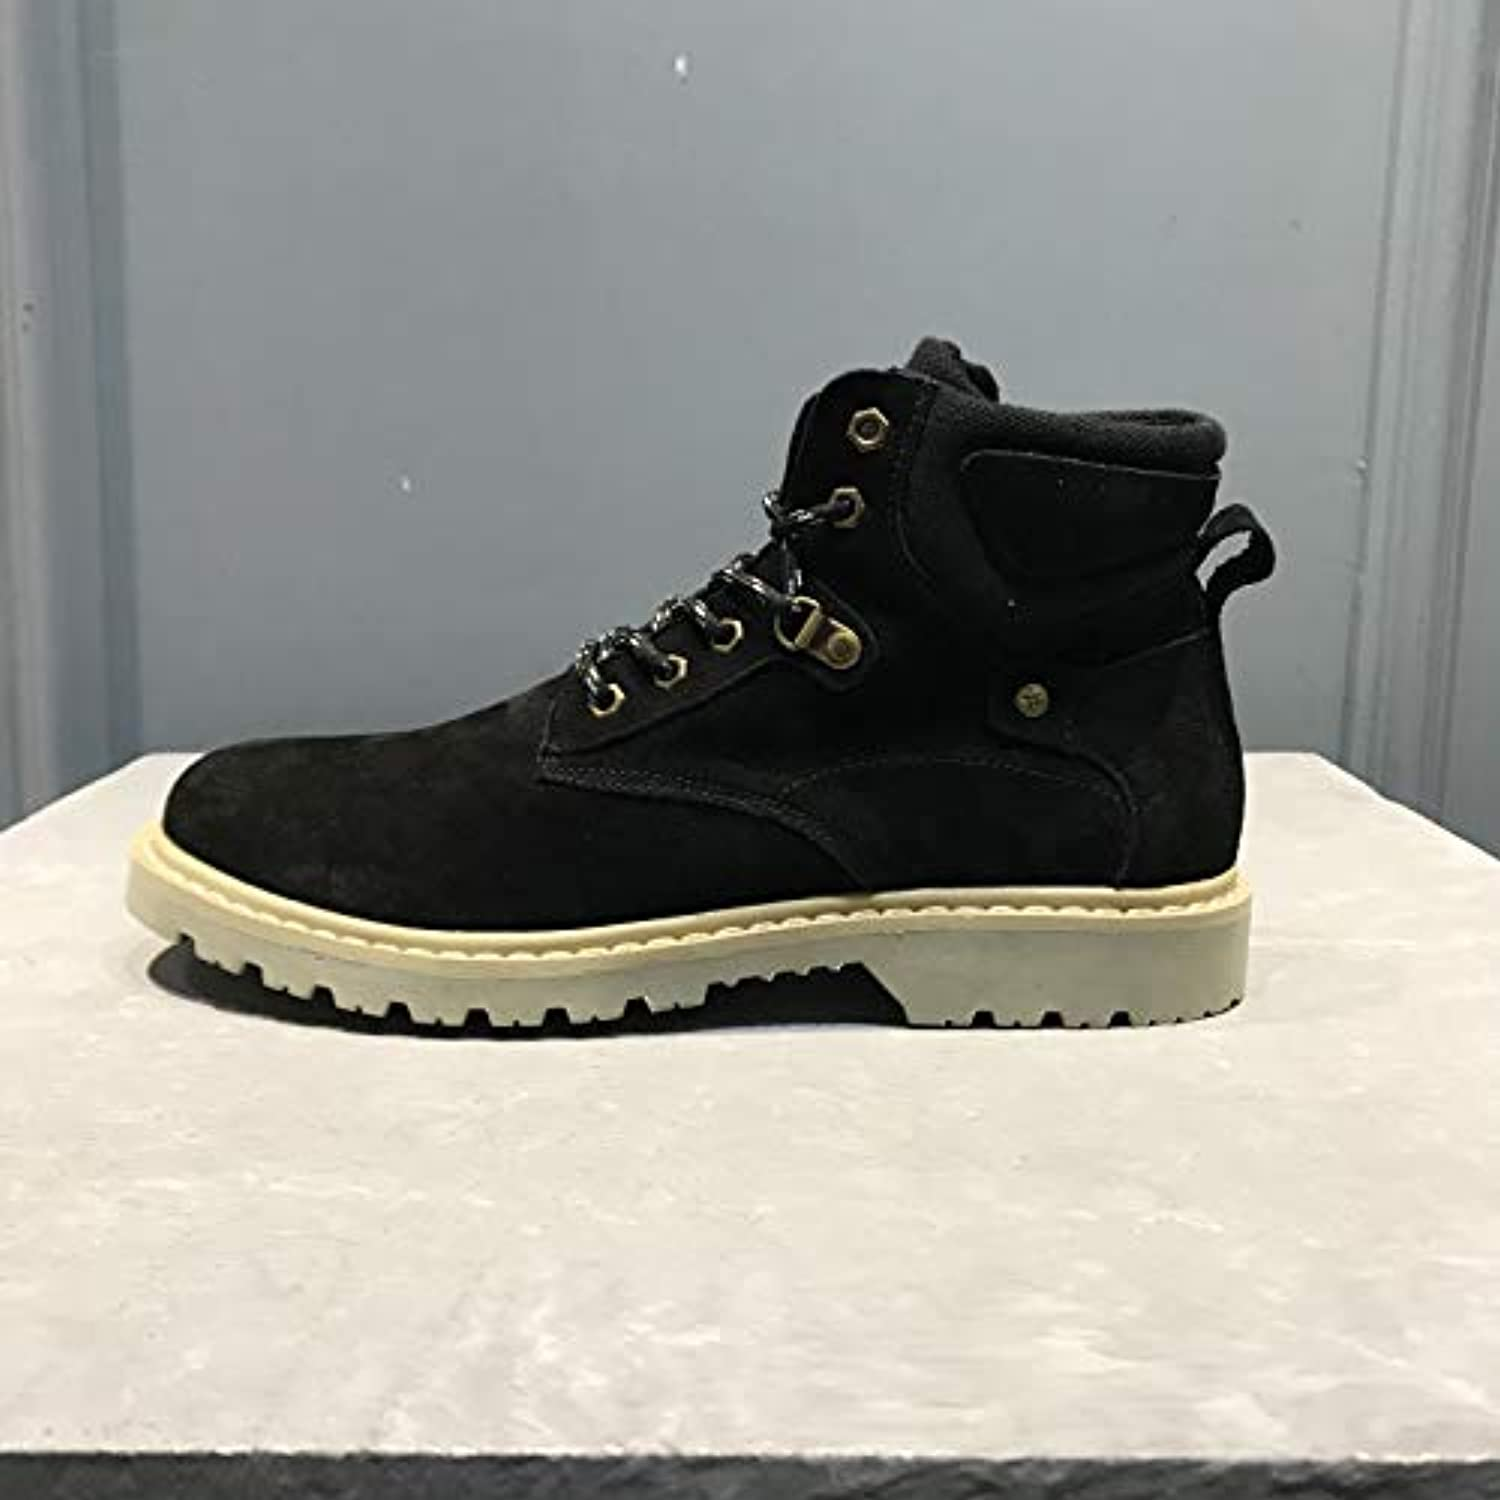 LOVDRAM Boots Men's Autumn And Winter Men'S High-Top Casual shoes Boots Martin Boots Men